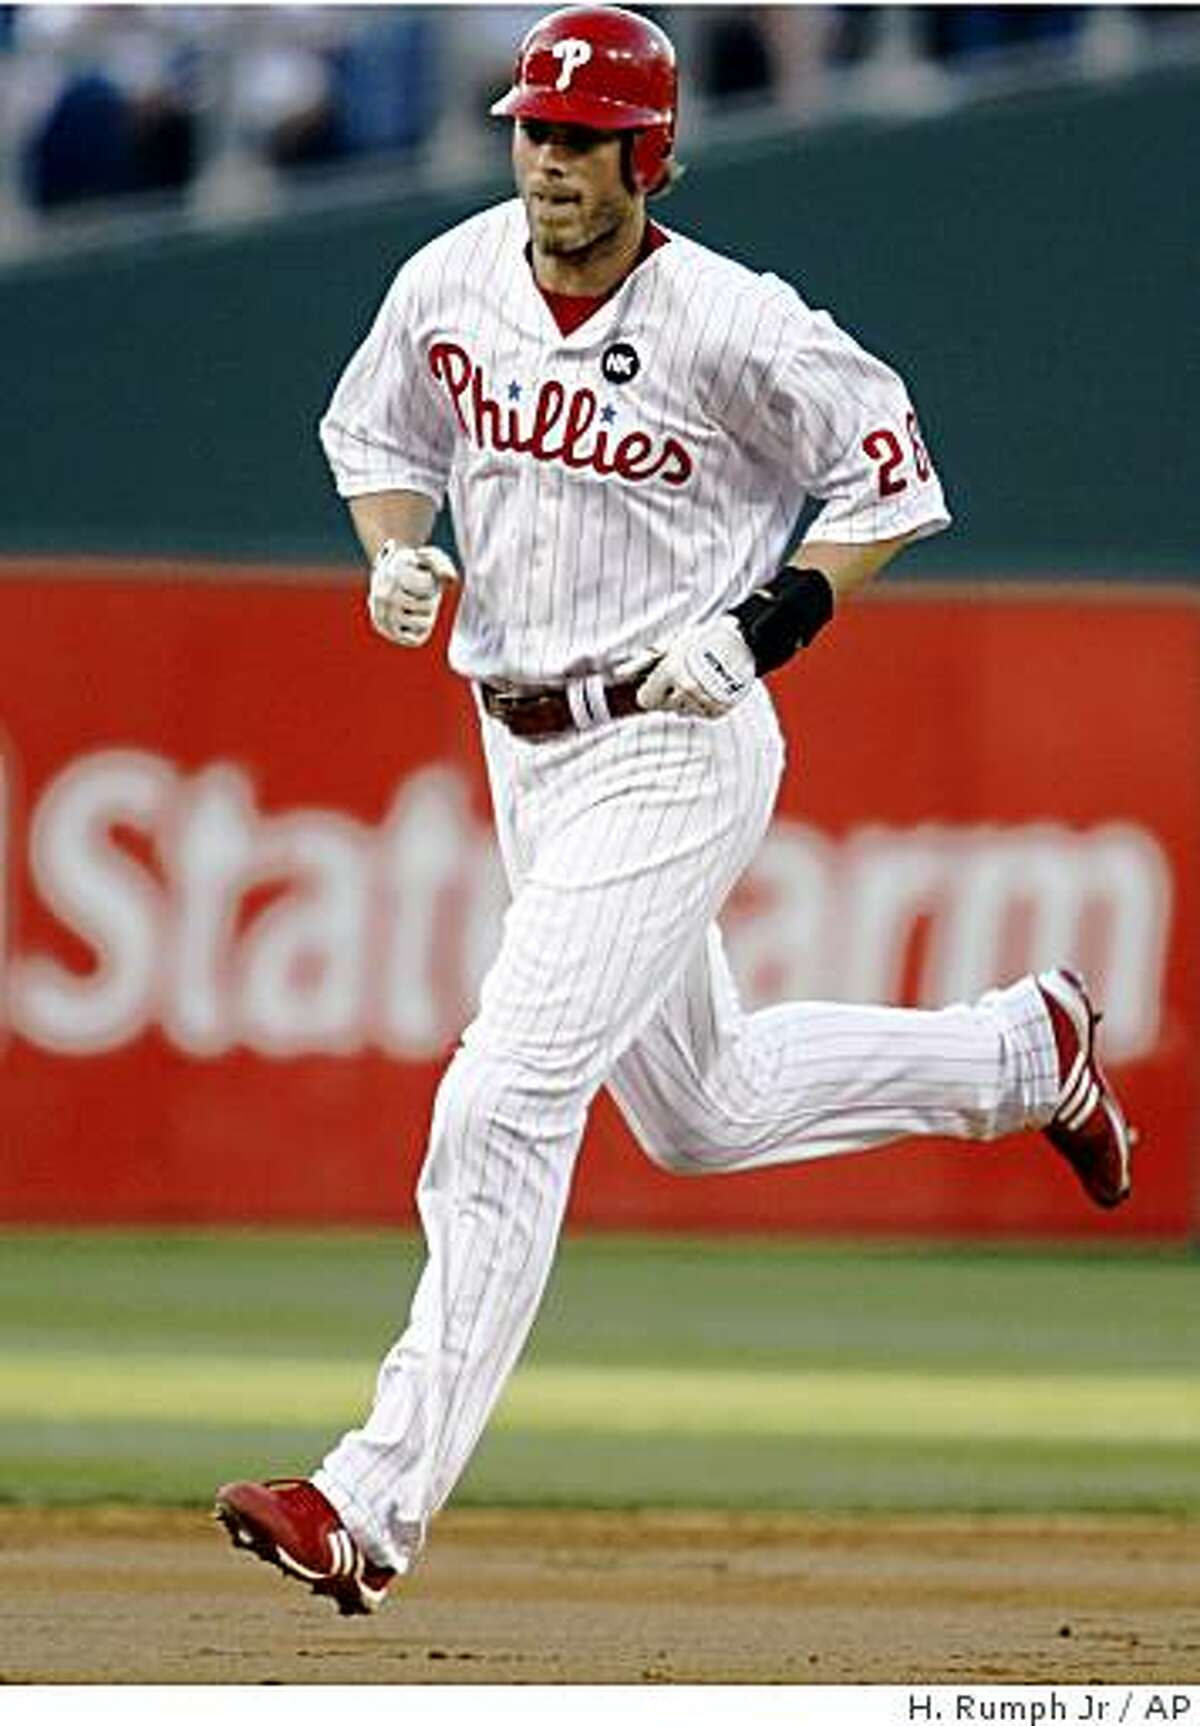 Philadelphia Phillies' Jayson Werth runs the bases after hitting a solo home run against the Cincinnati Reds in the second inning of a baseball game Tuesday, July 7, 2009, in Philadelphia. (AP Photo/H. Rumph Jr.)